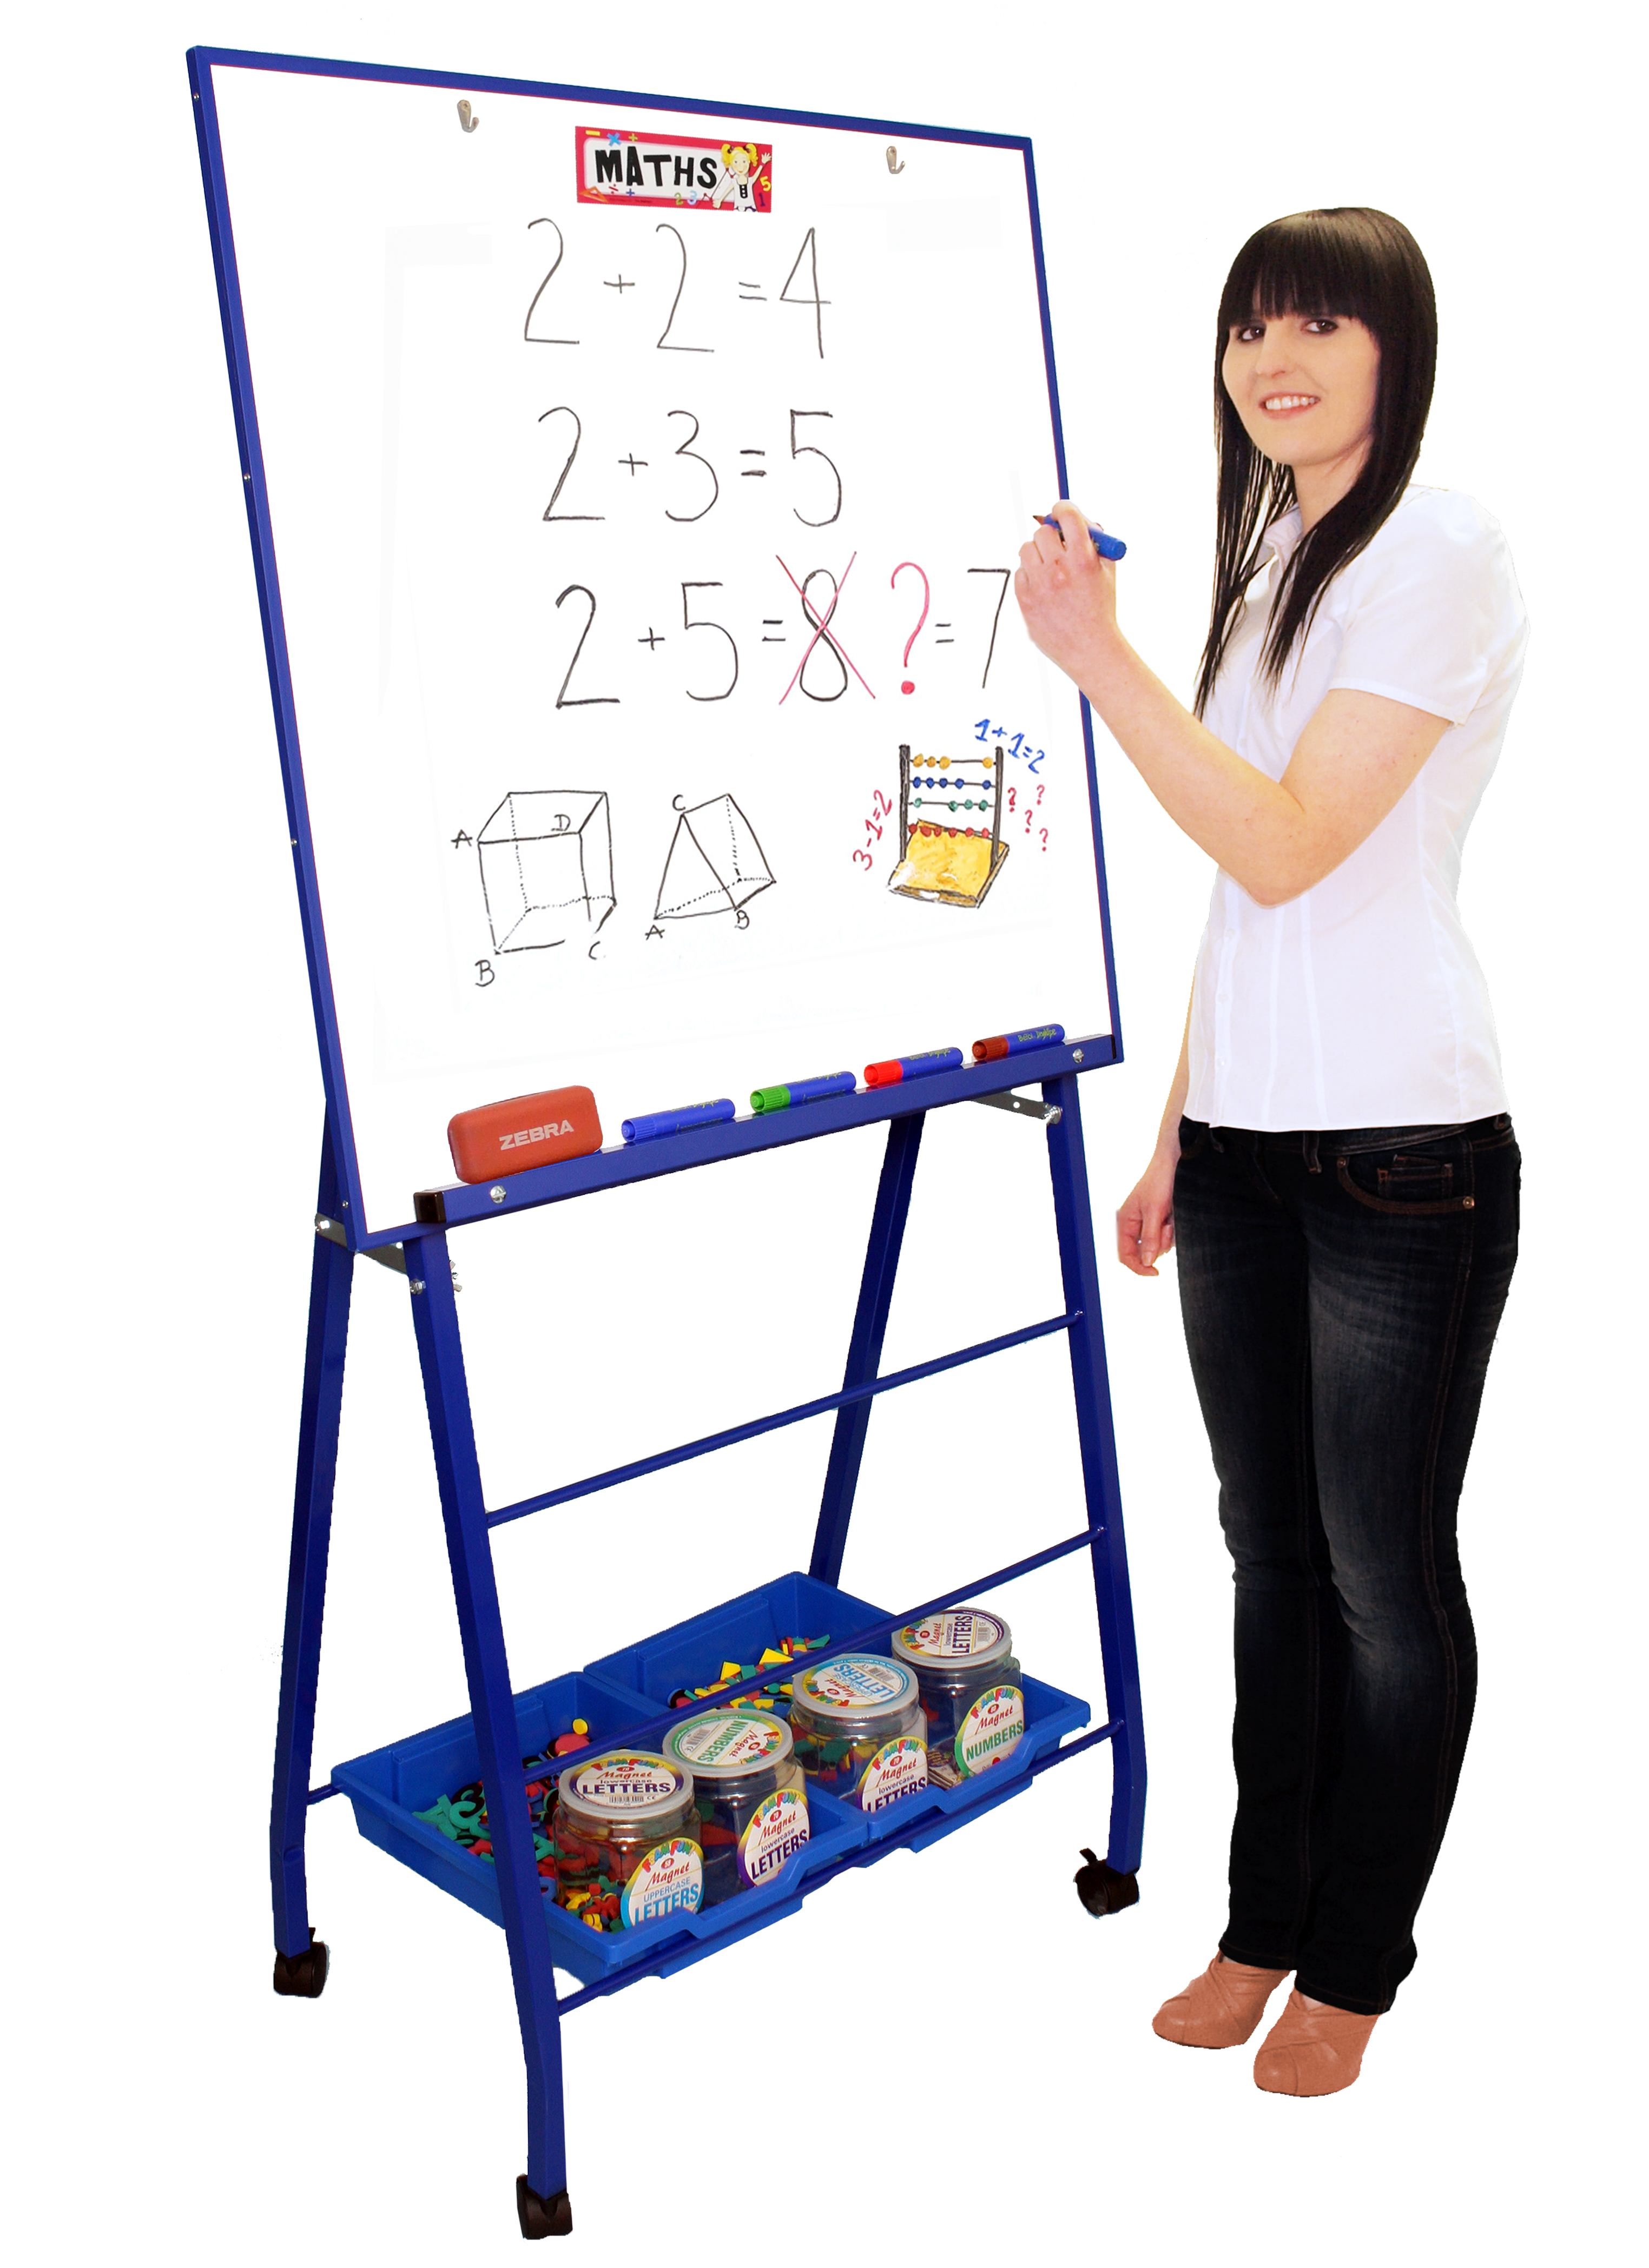 whiteboard clipart whiteboard easel